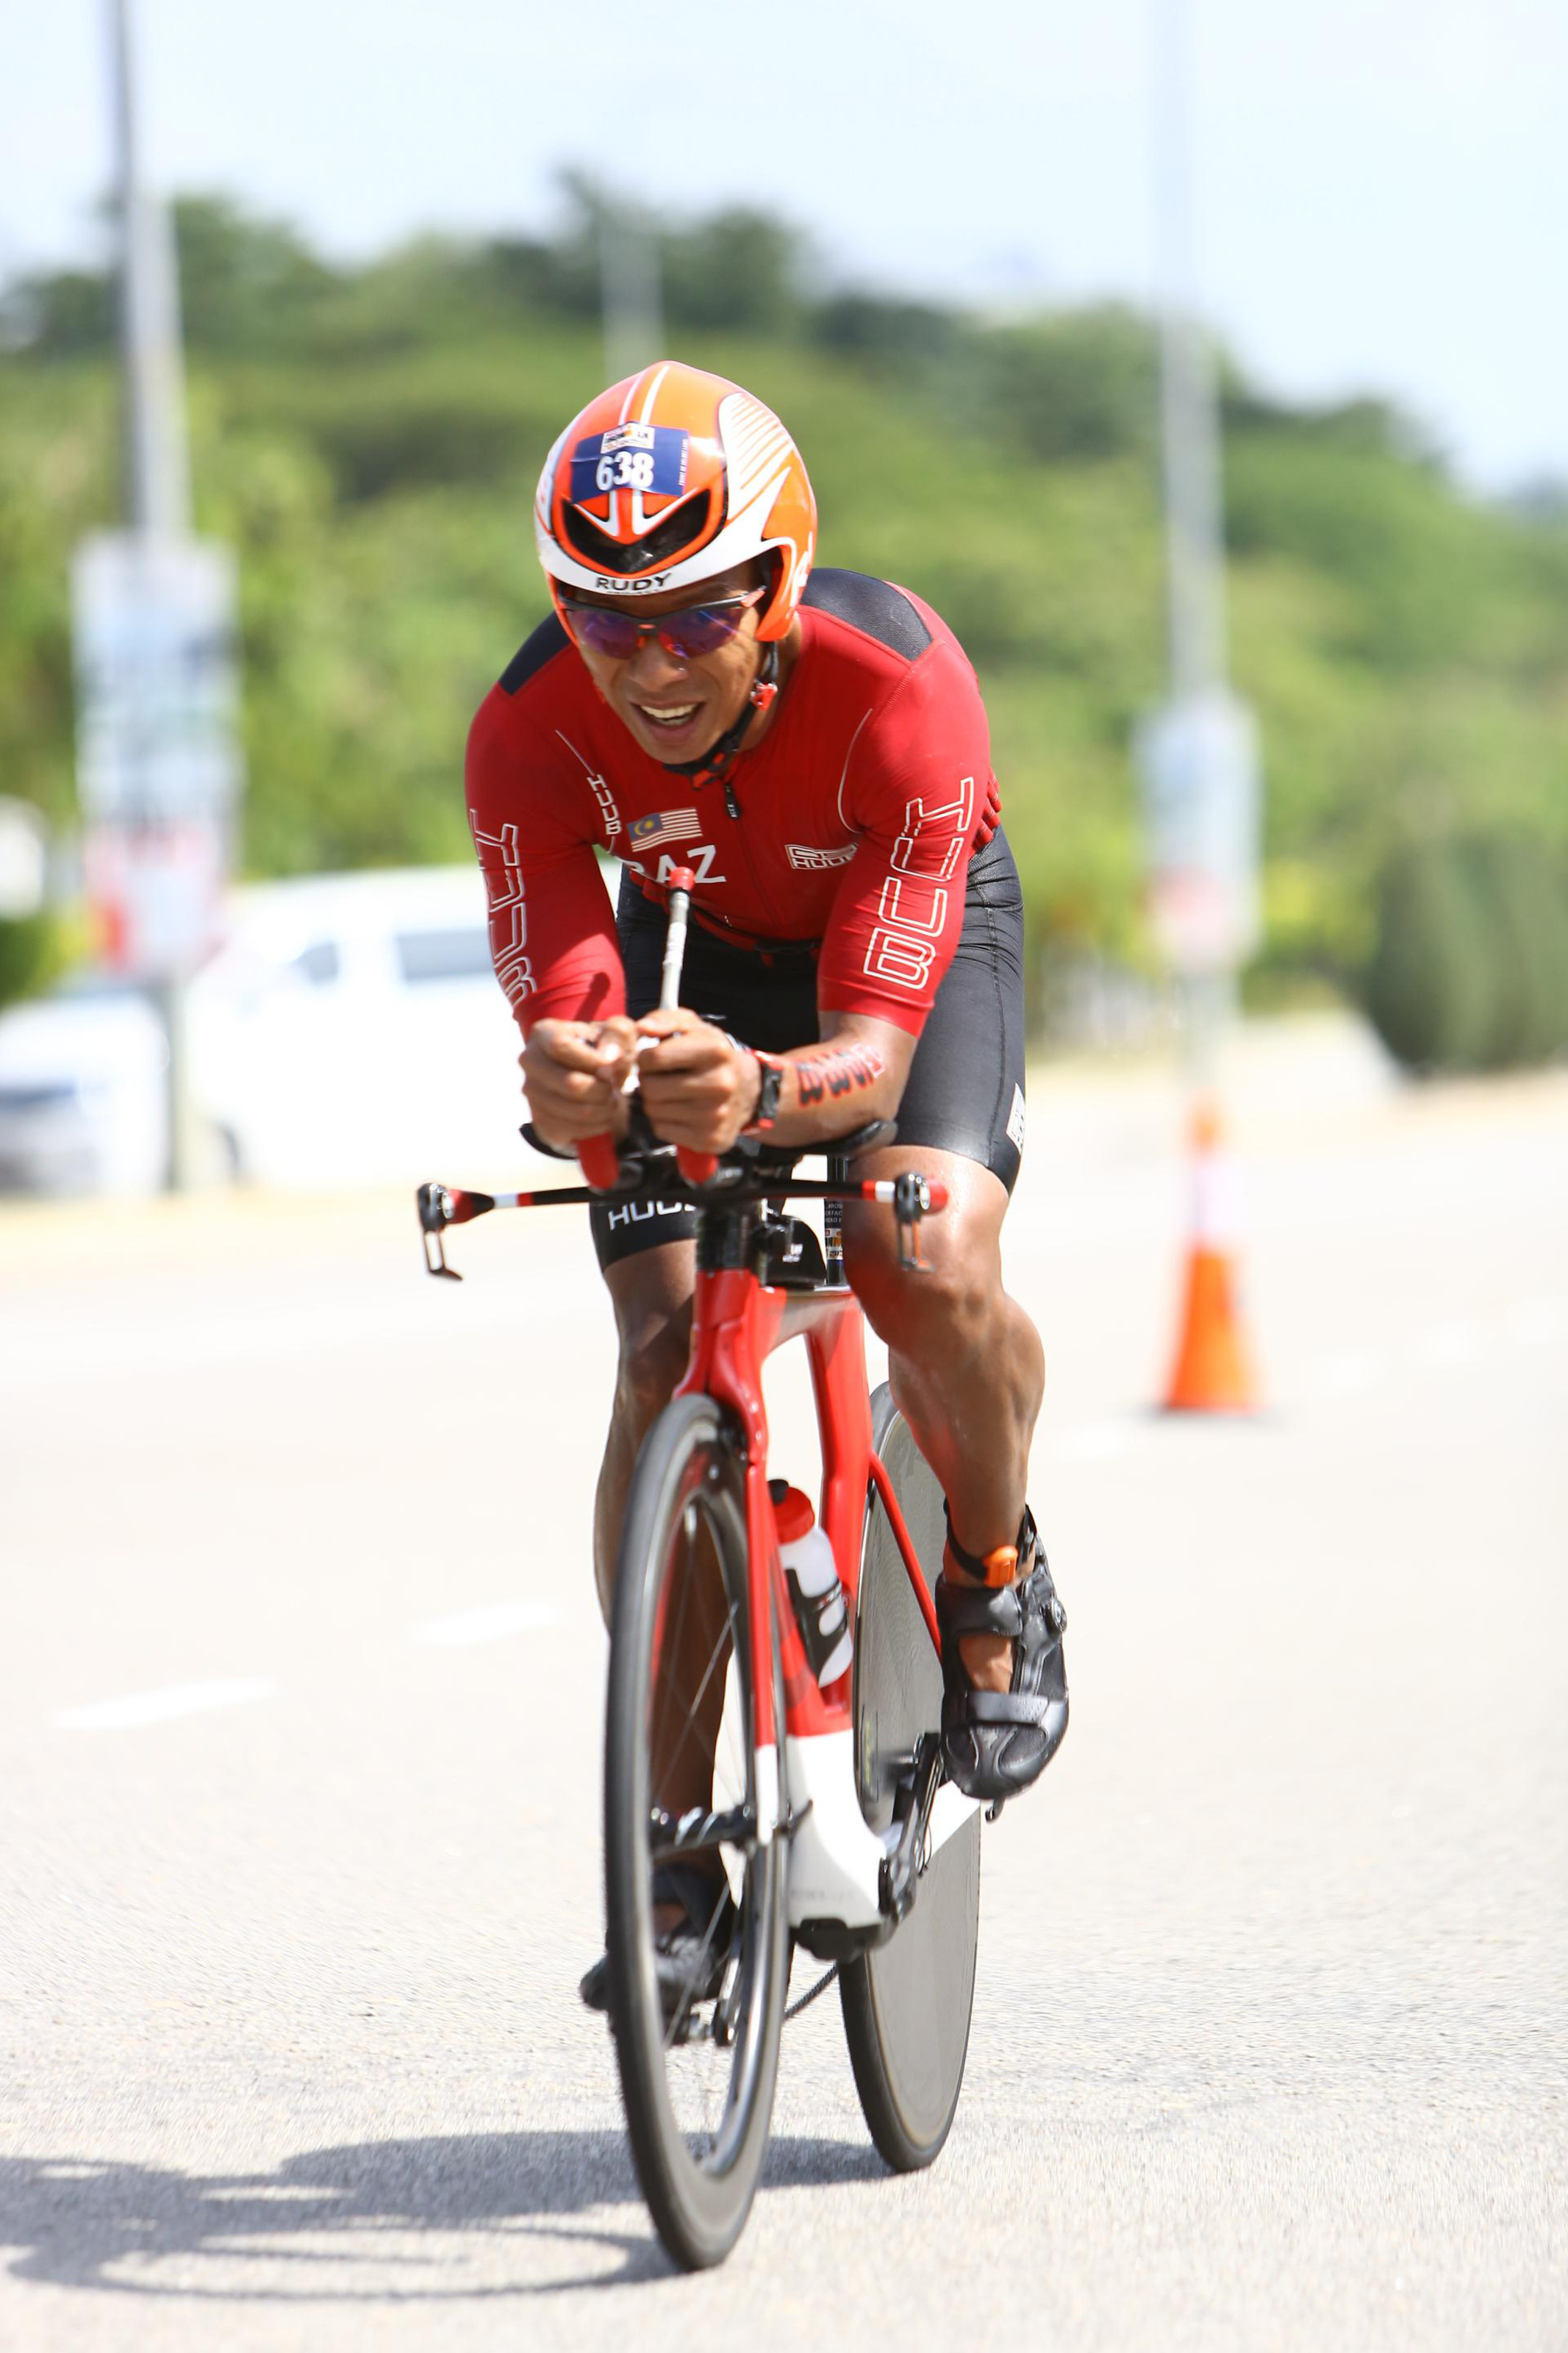 Only the best gears, apparels and accessories in Triathlon will do for Dato' Razlan. (FinisherPix)